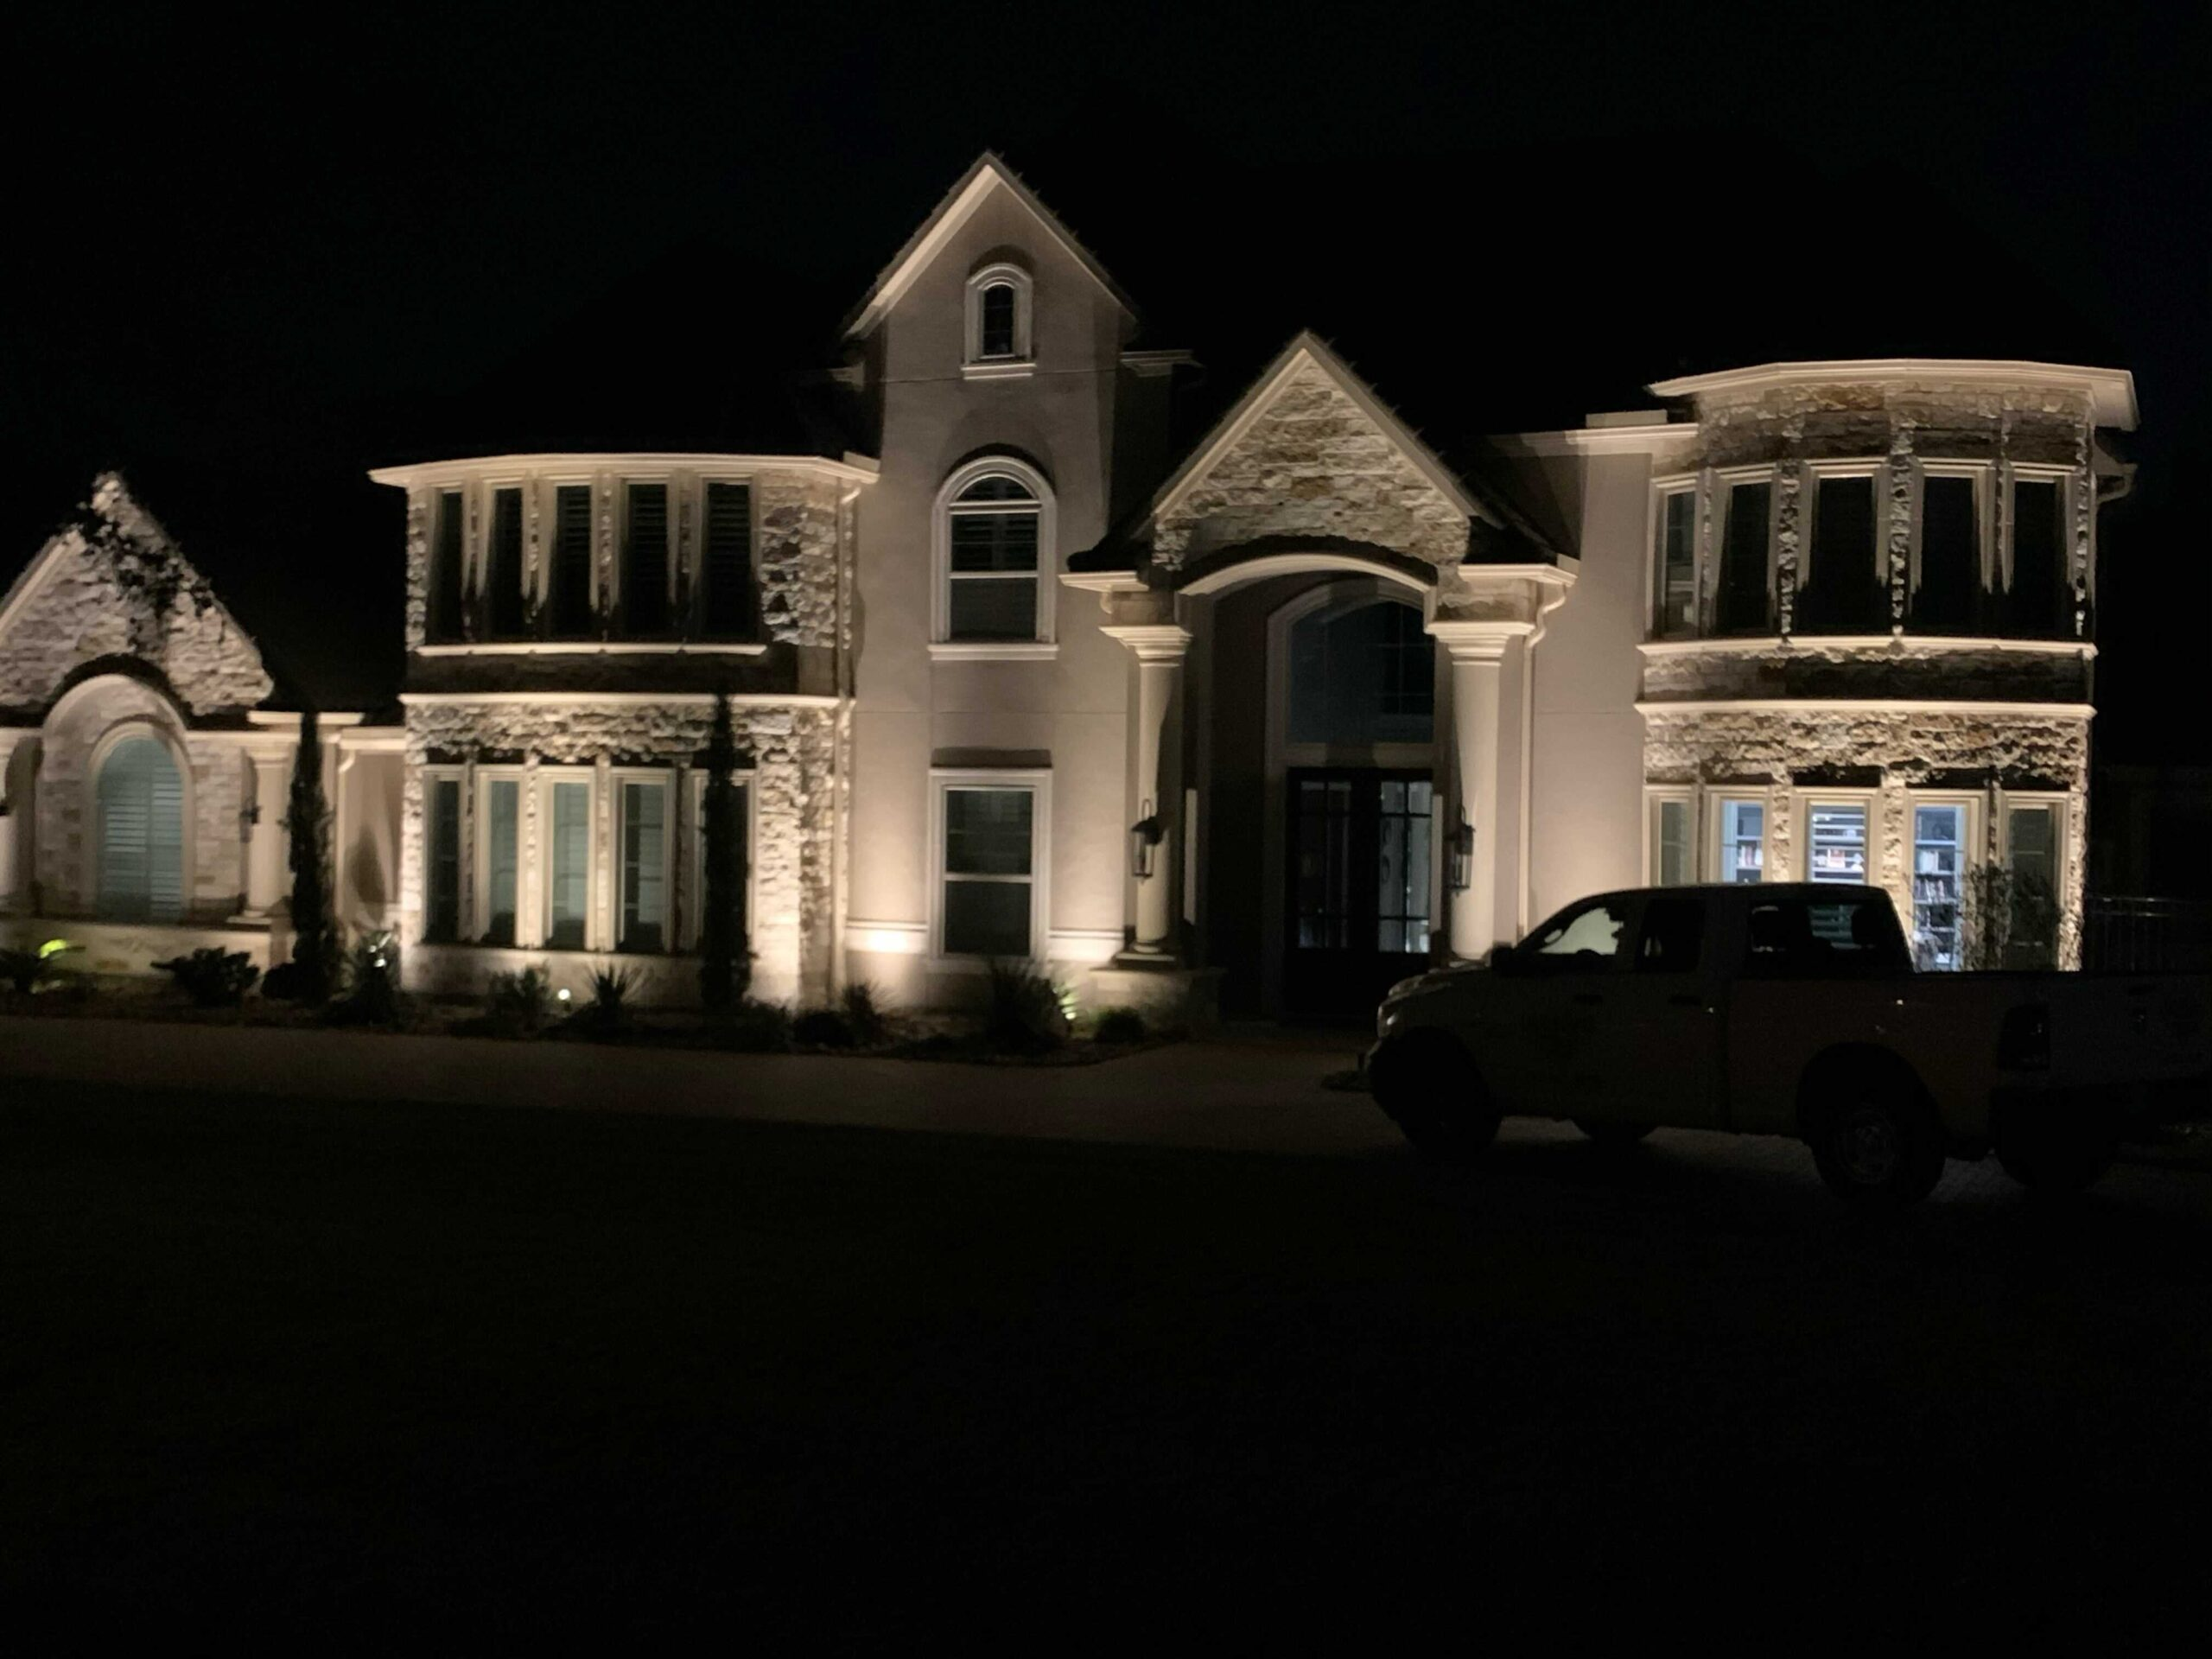 The front of the Woodlands Houston Home lit up at night with a truck parked in front